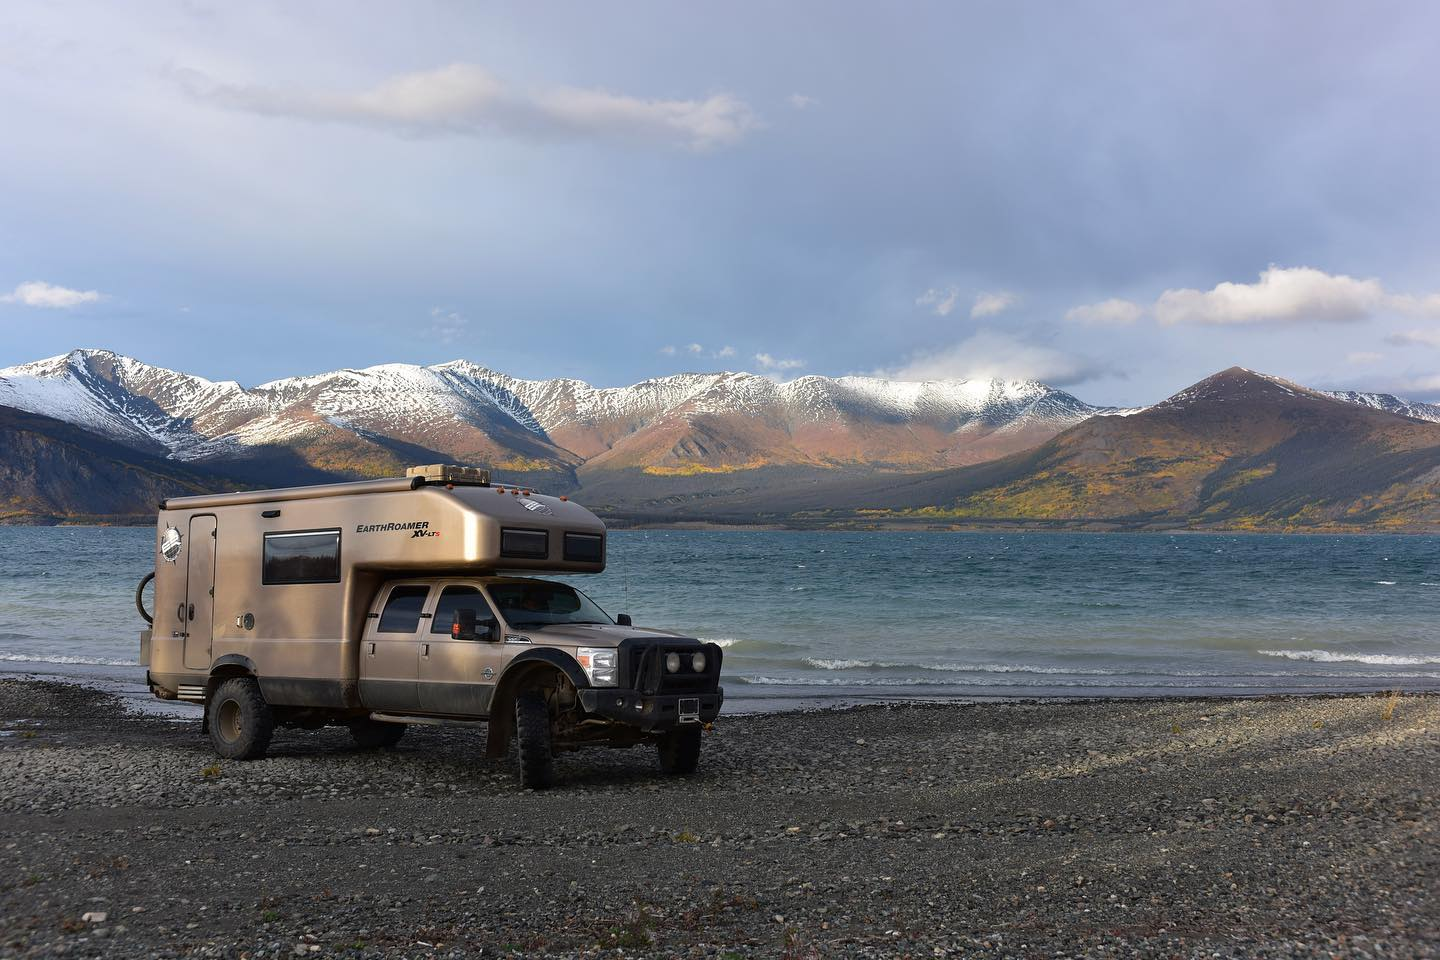 Image of the EarthRoamer XV-LT with Colorado's mountains in the background